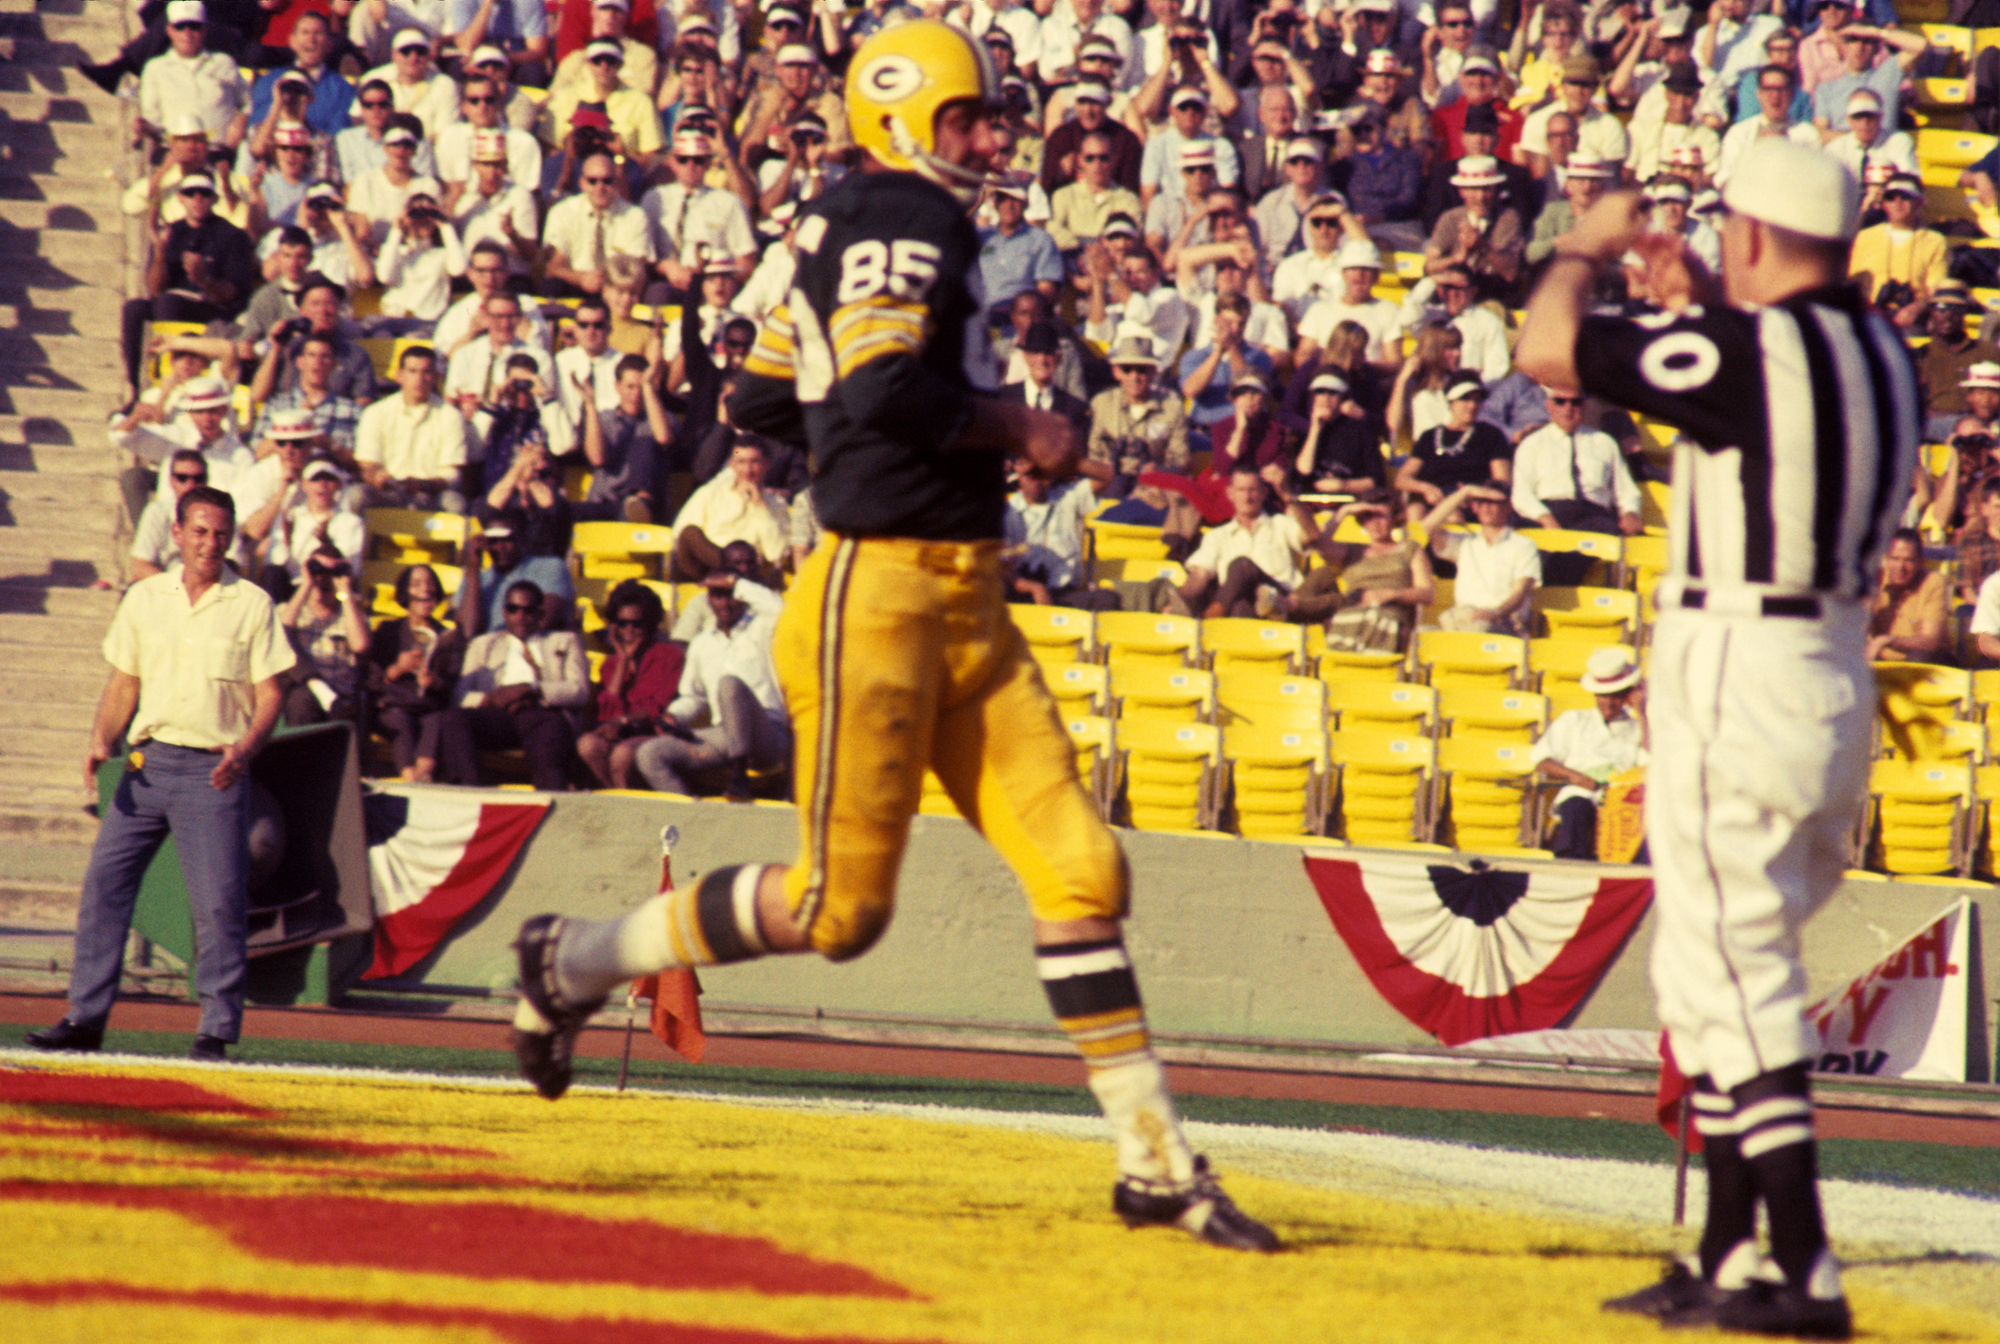 Wide receiver Max McGee, #85 of the Green Bay Packers, scores on a 13-yard touchdown pass from quarterback Bart Starr in the third quarter of Super Bowl I on January 15, 1967, against the Kansas City Chiefs at the Los Angeles Memorial Coliseum in Los Angeles, California.